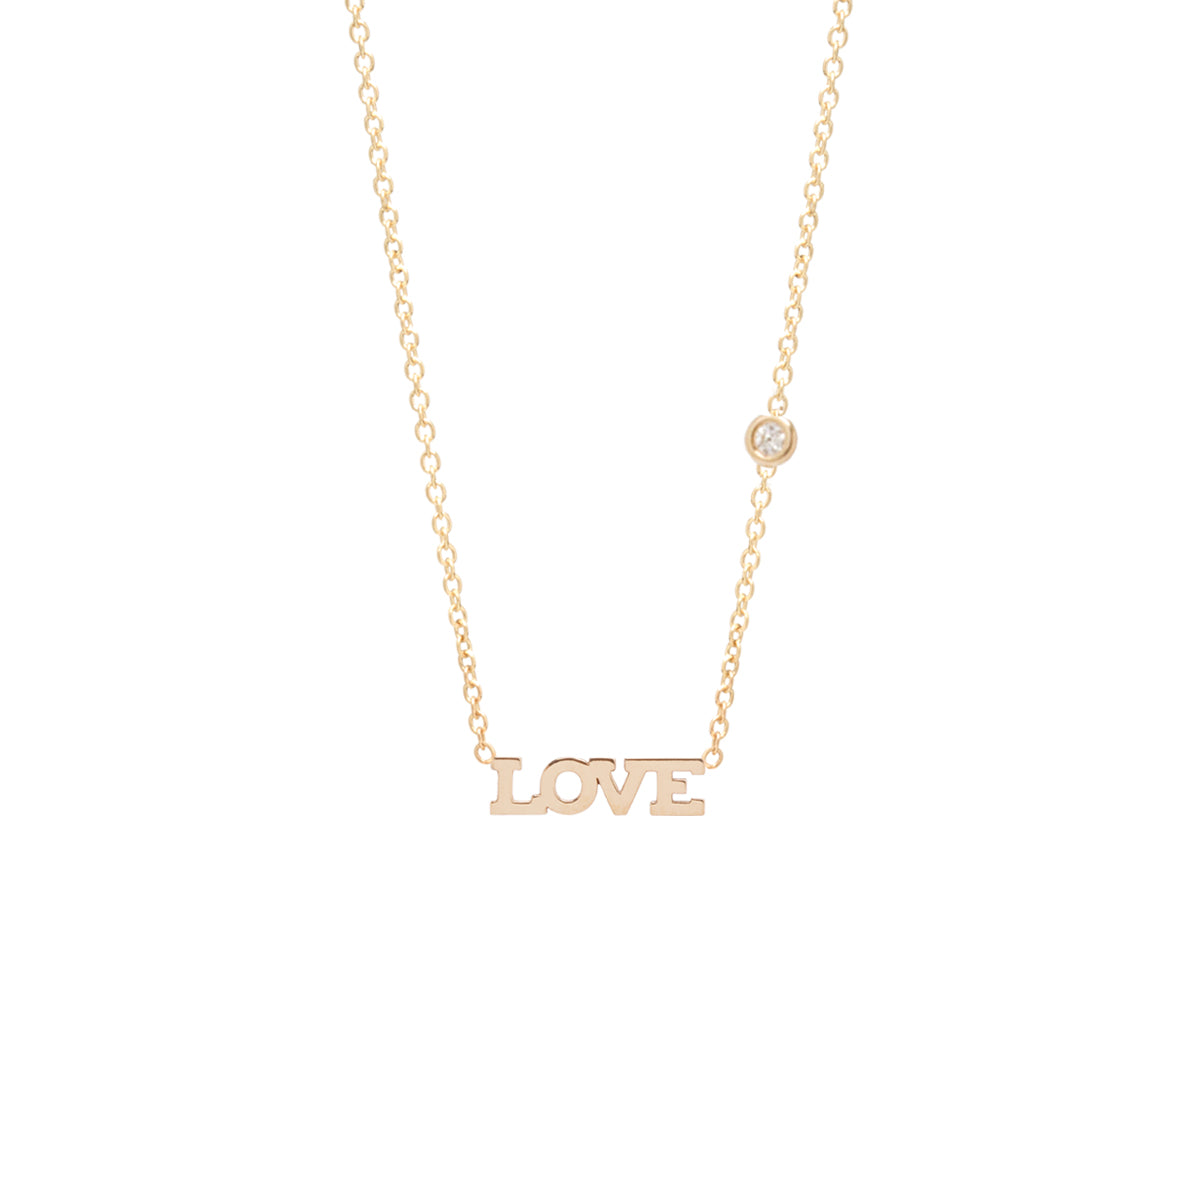 14k itty bitty LOVE necklace with floating diamond